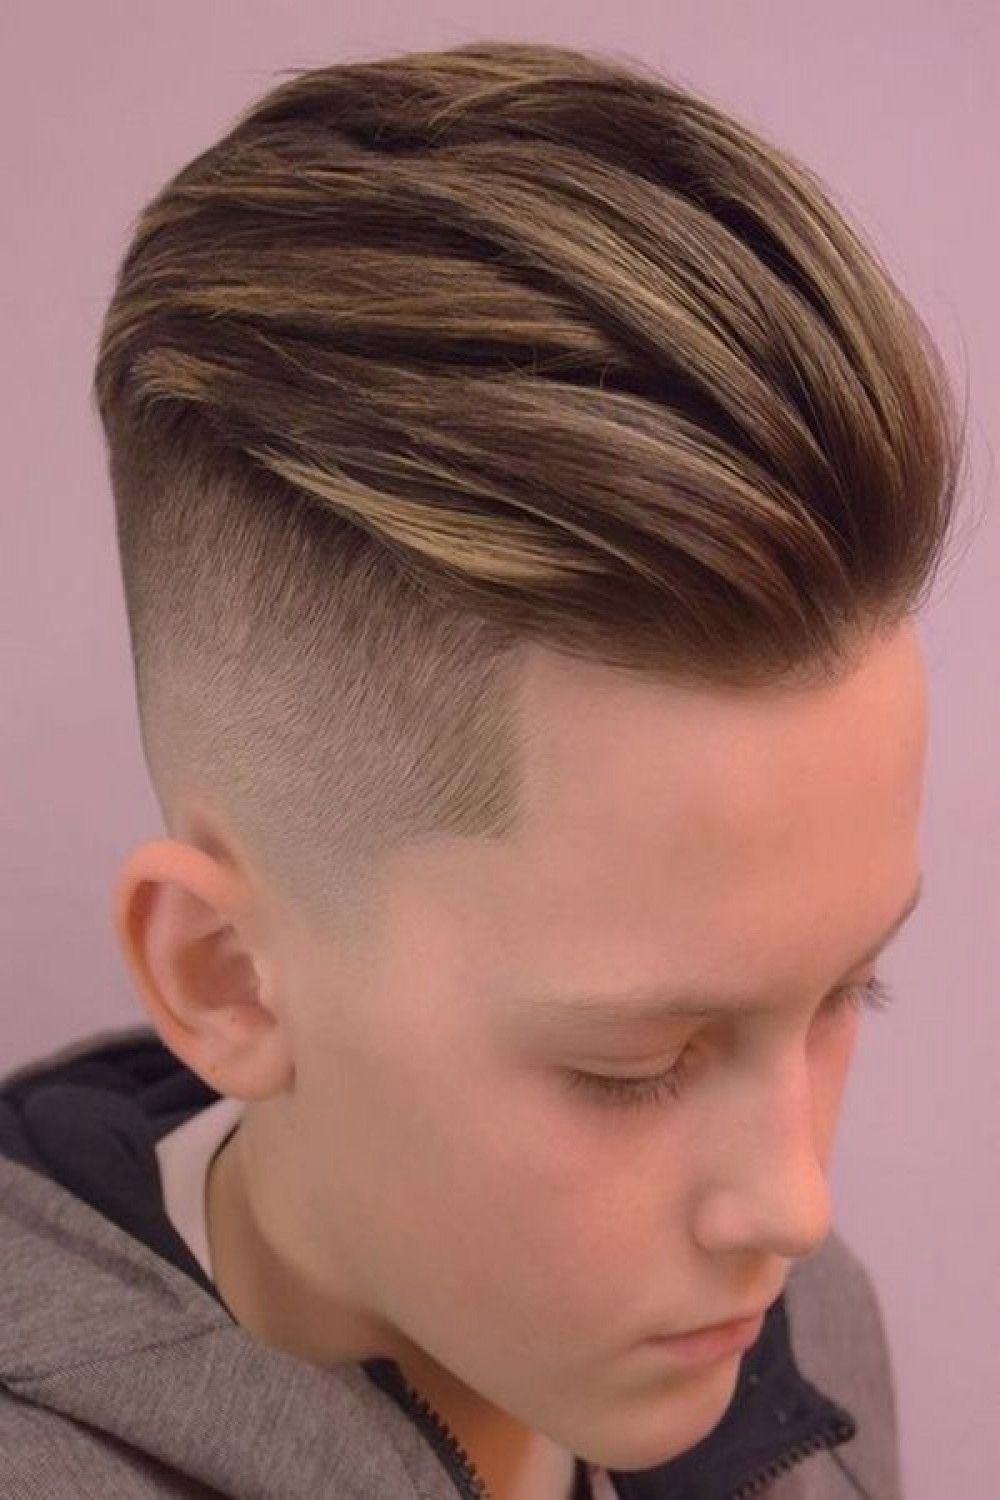 25 Inspirierend Trendige Und Susse Jungen Frisuren Fur 2020 Boy Haircuts Short Boy Haircuts Long Teenage Haircuts